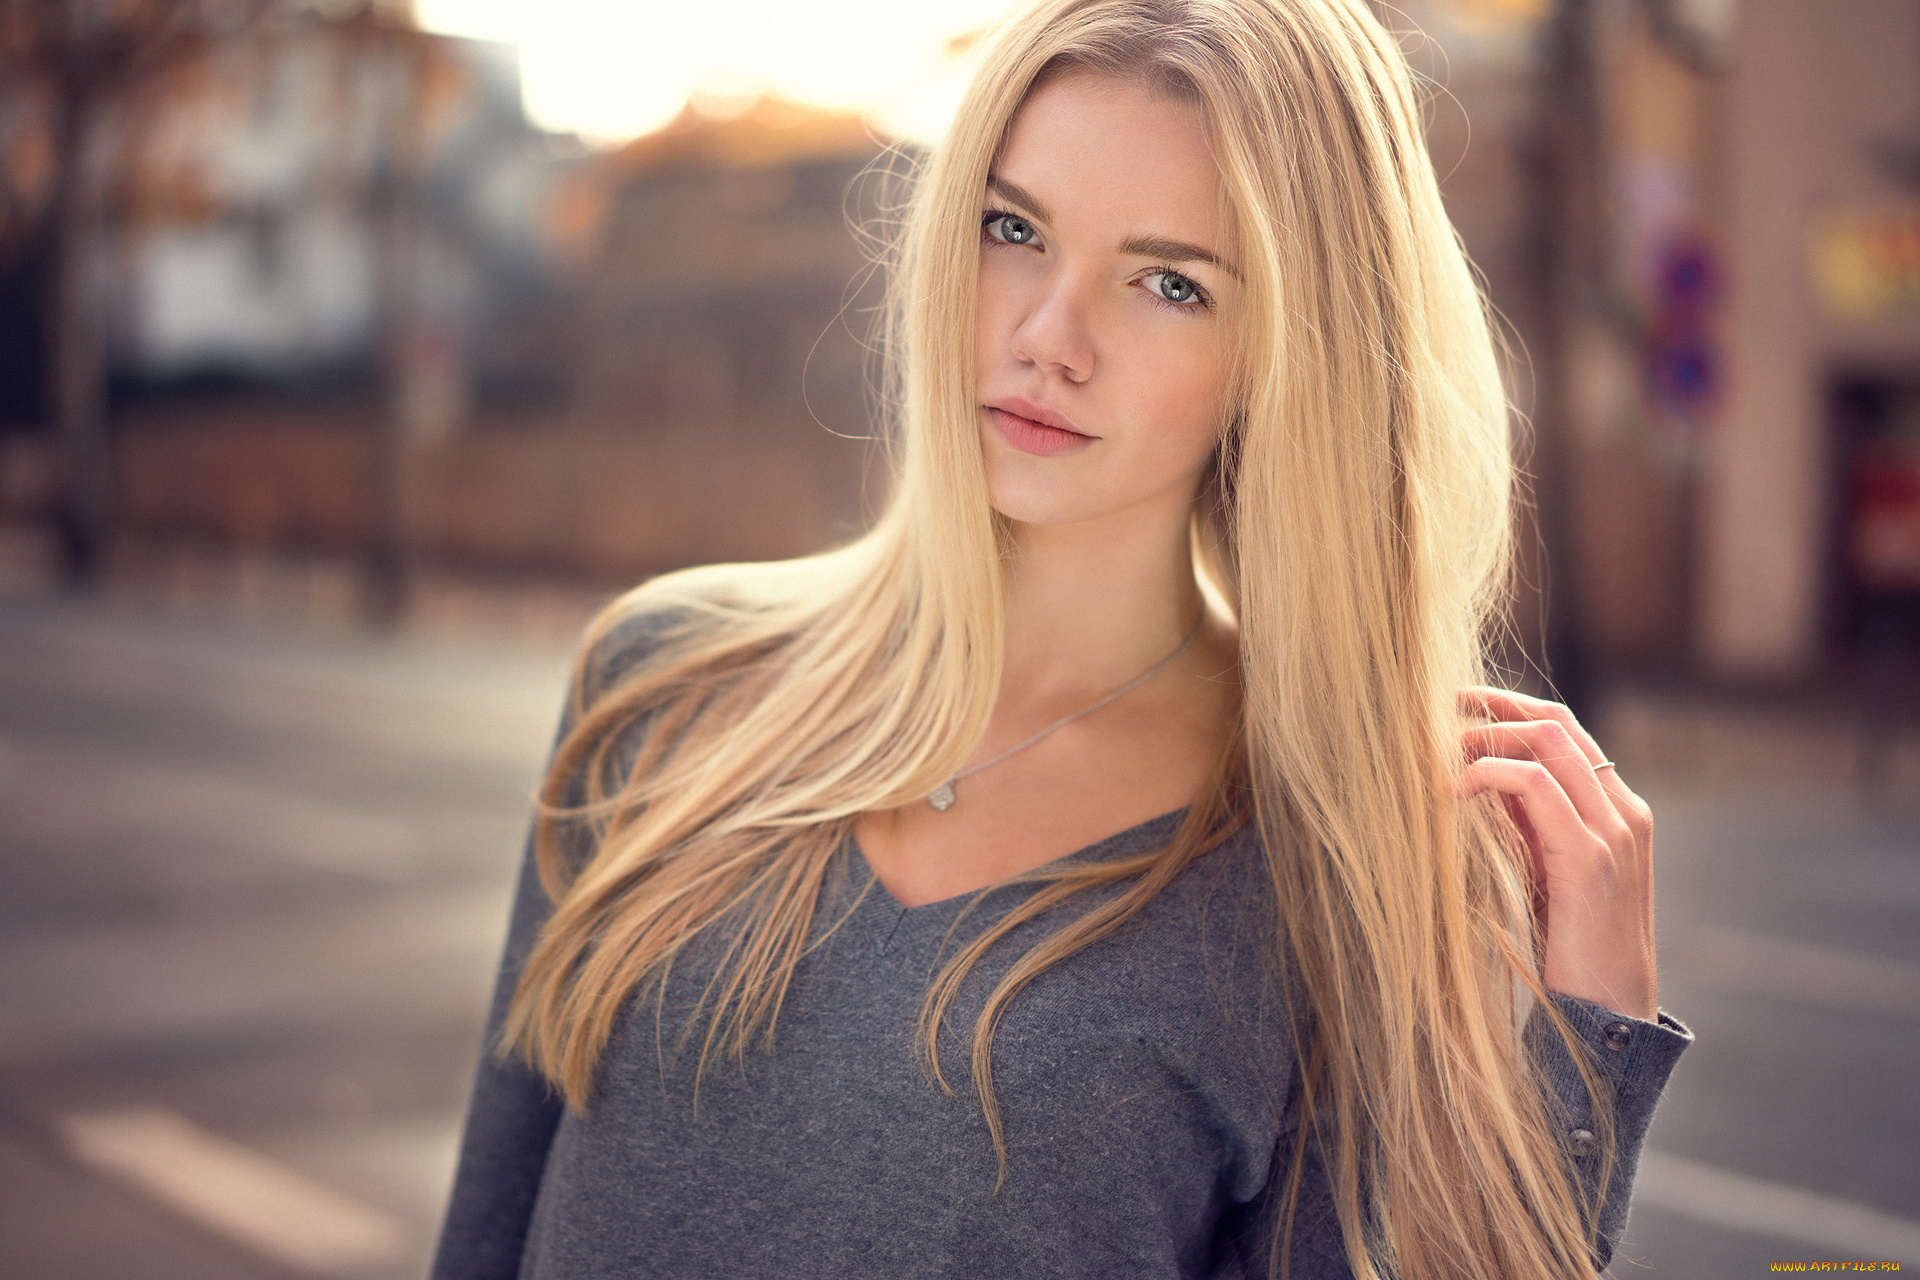 girl-blonde-funny-s-toung